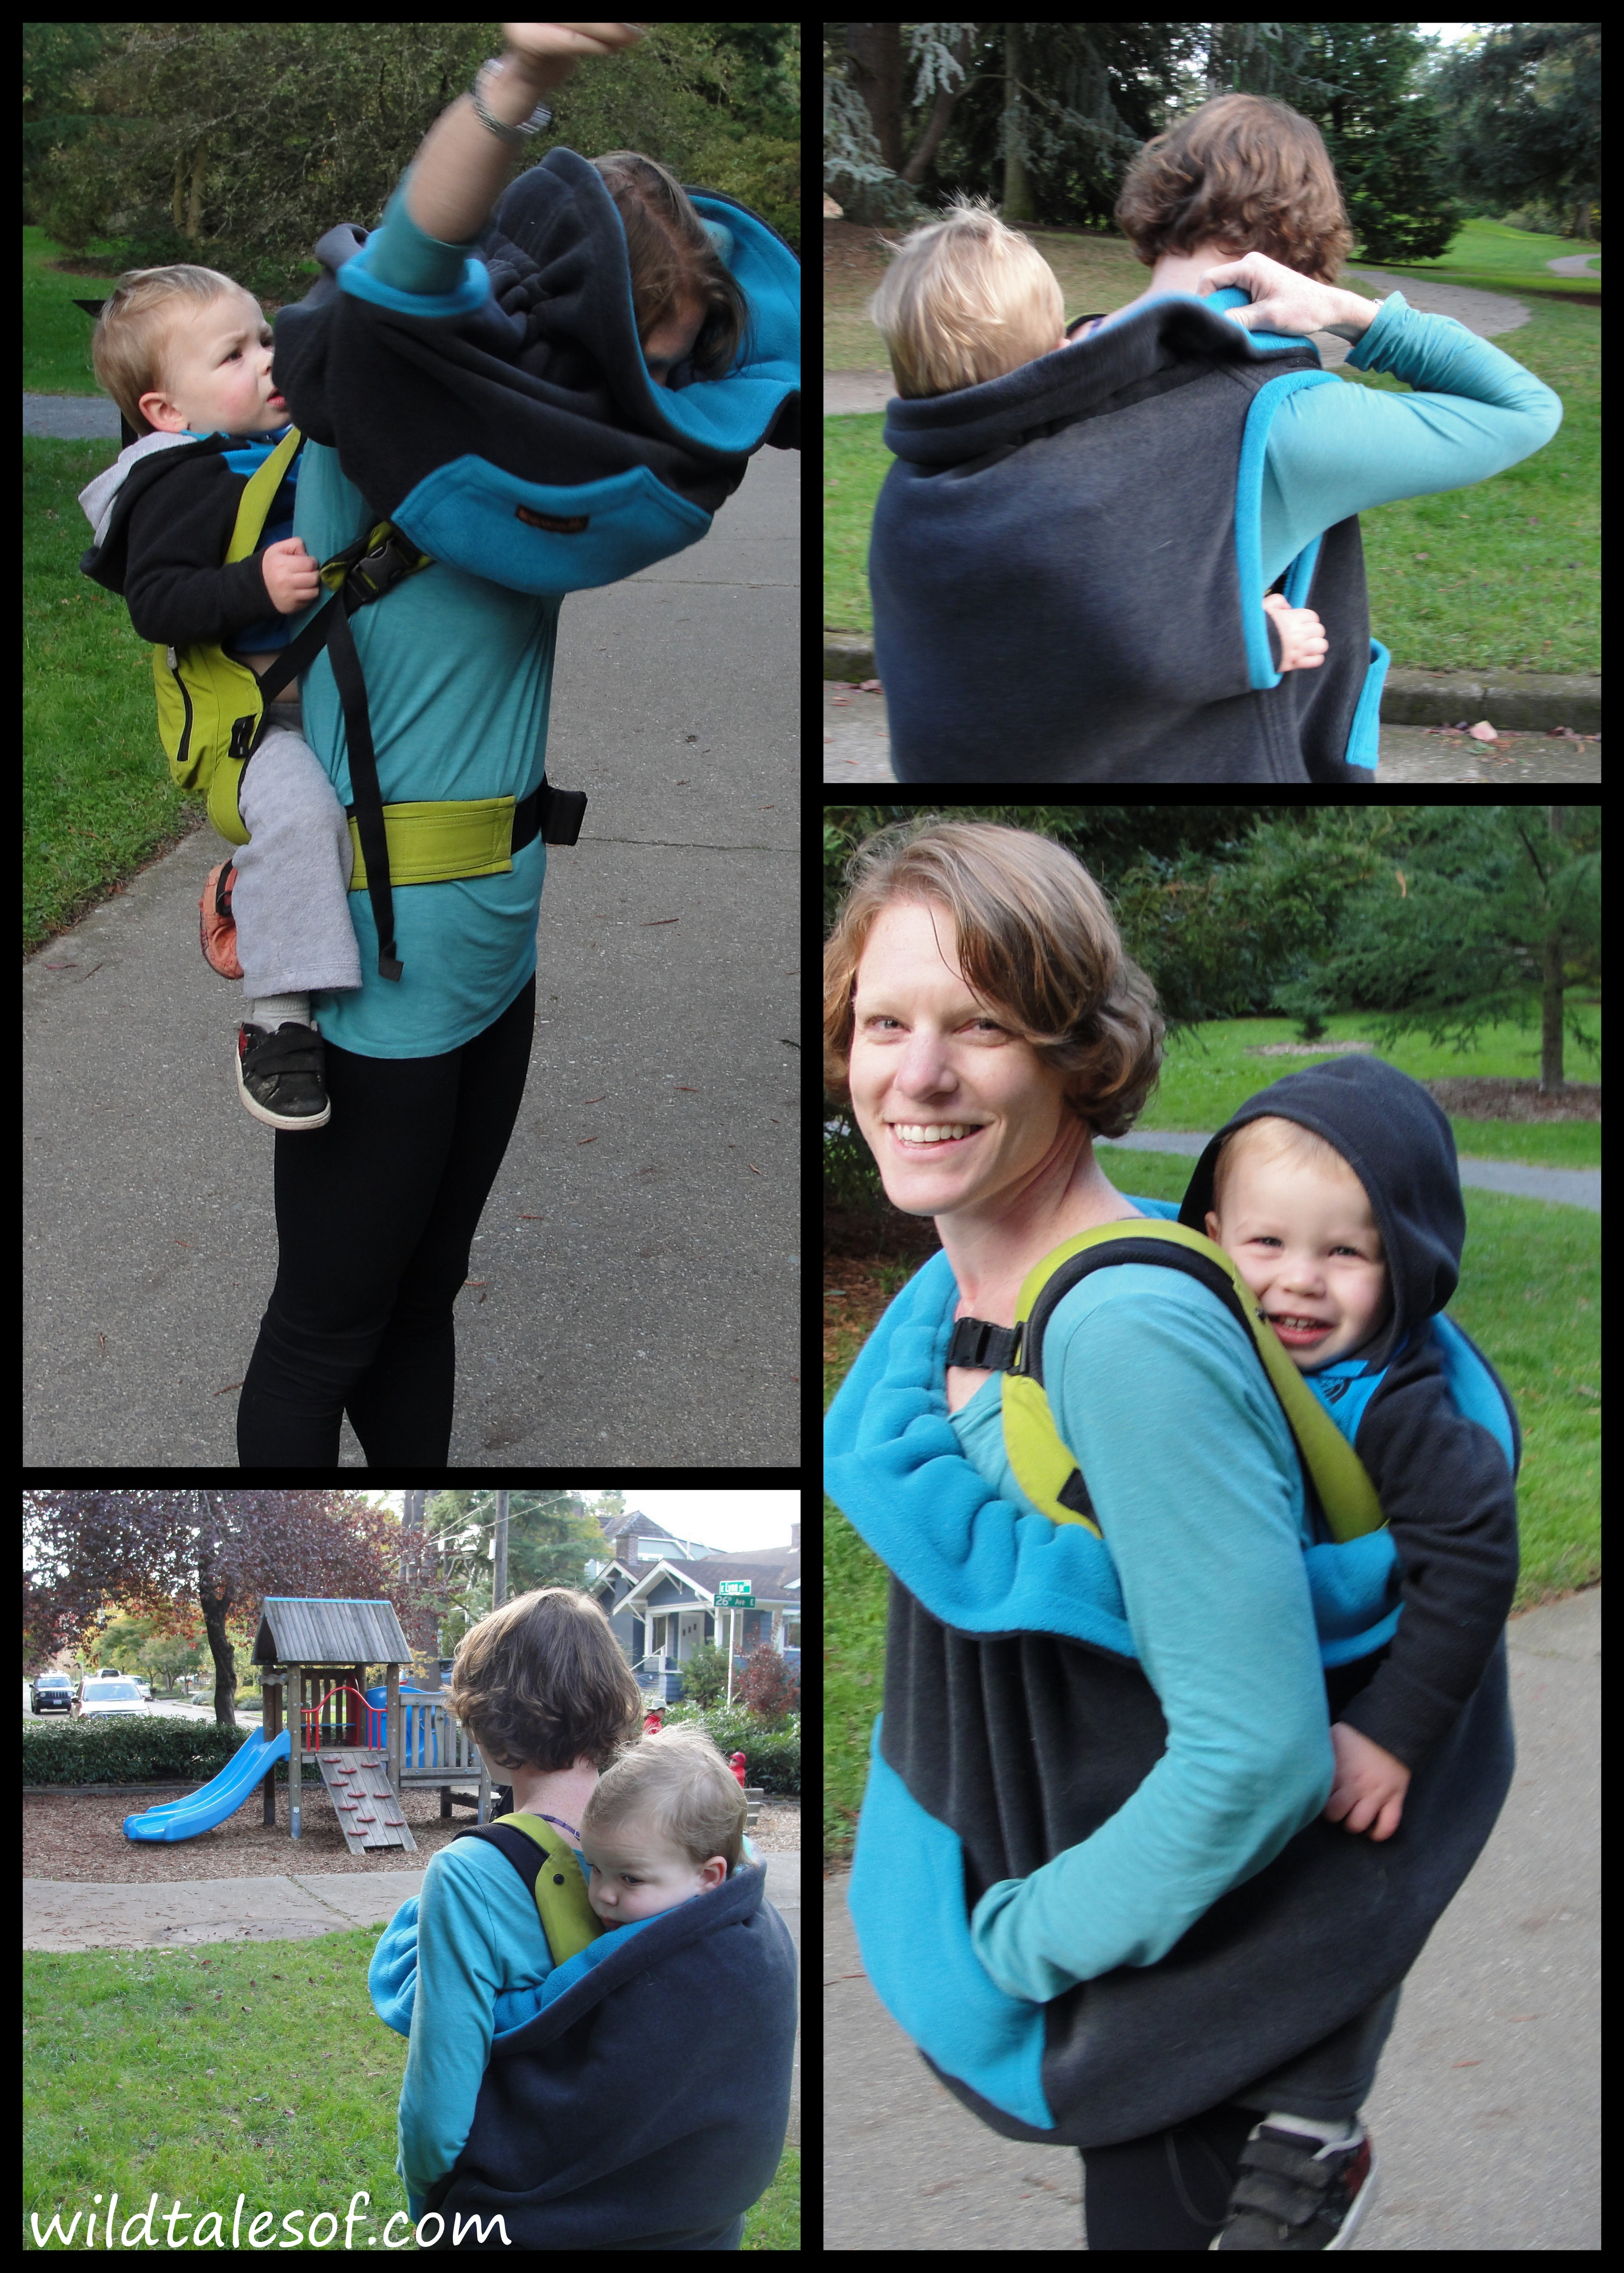 Adventure Gear: Staying Warm and Dry with Kowalli's Carrier Cover   WildTalesof.com